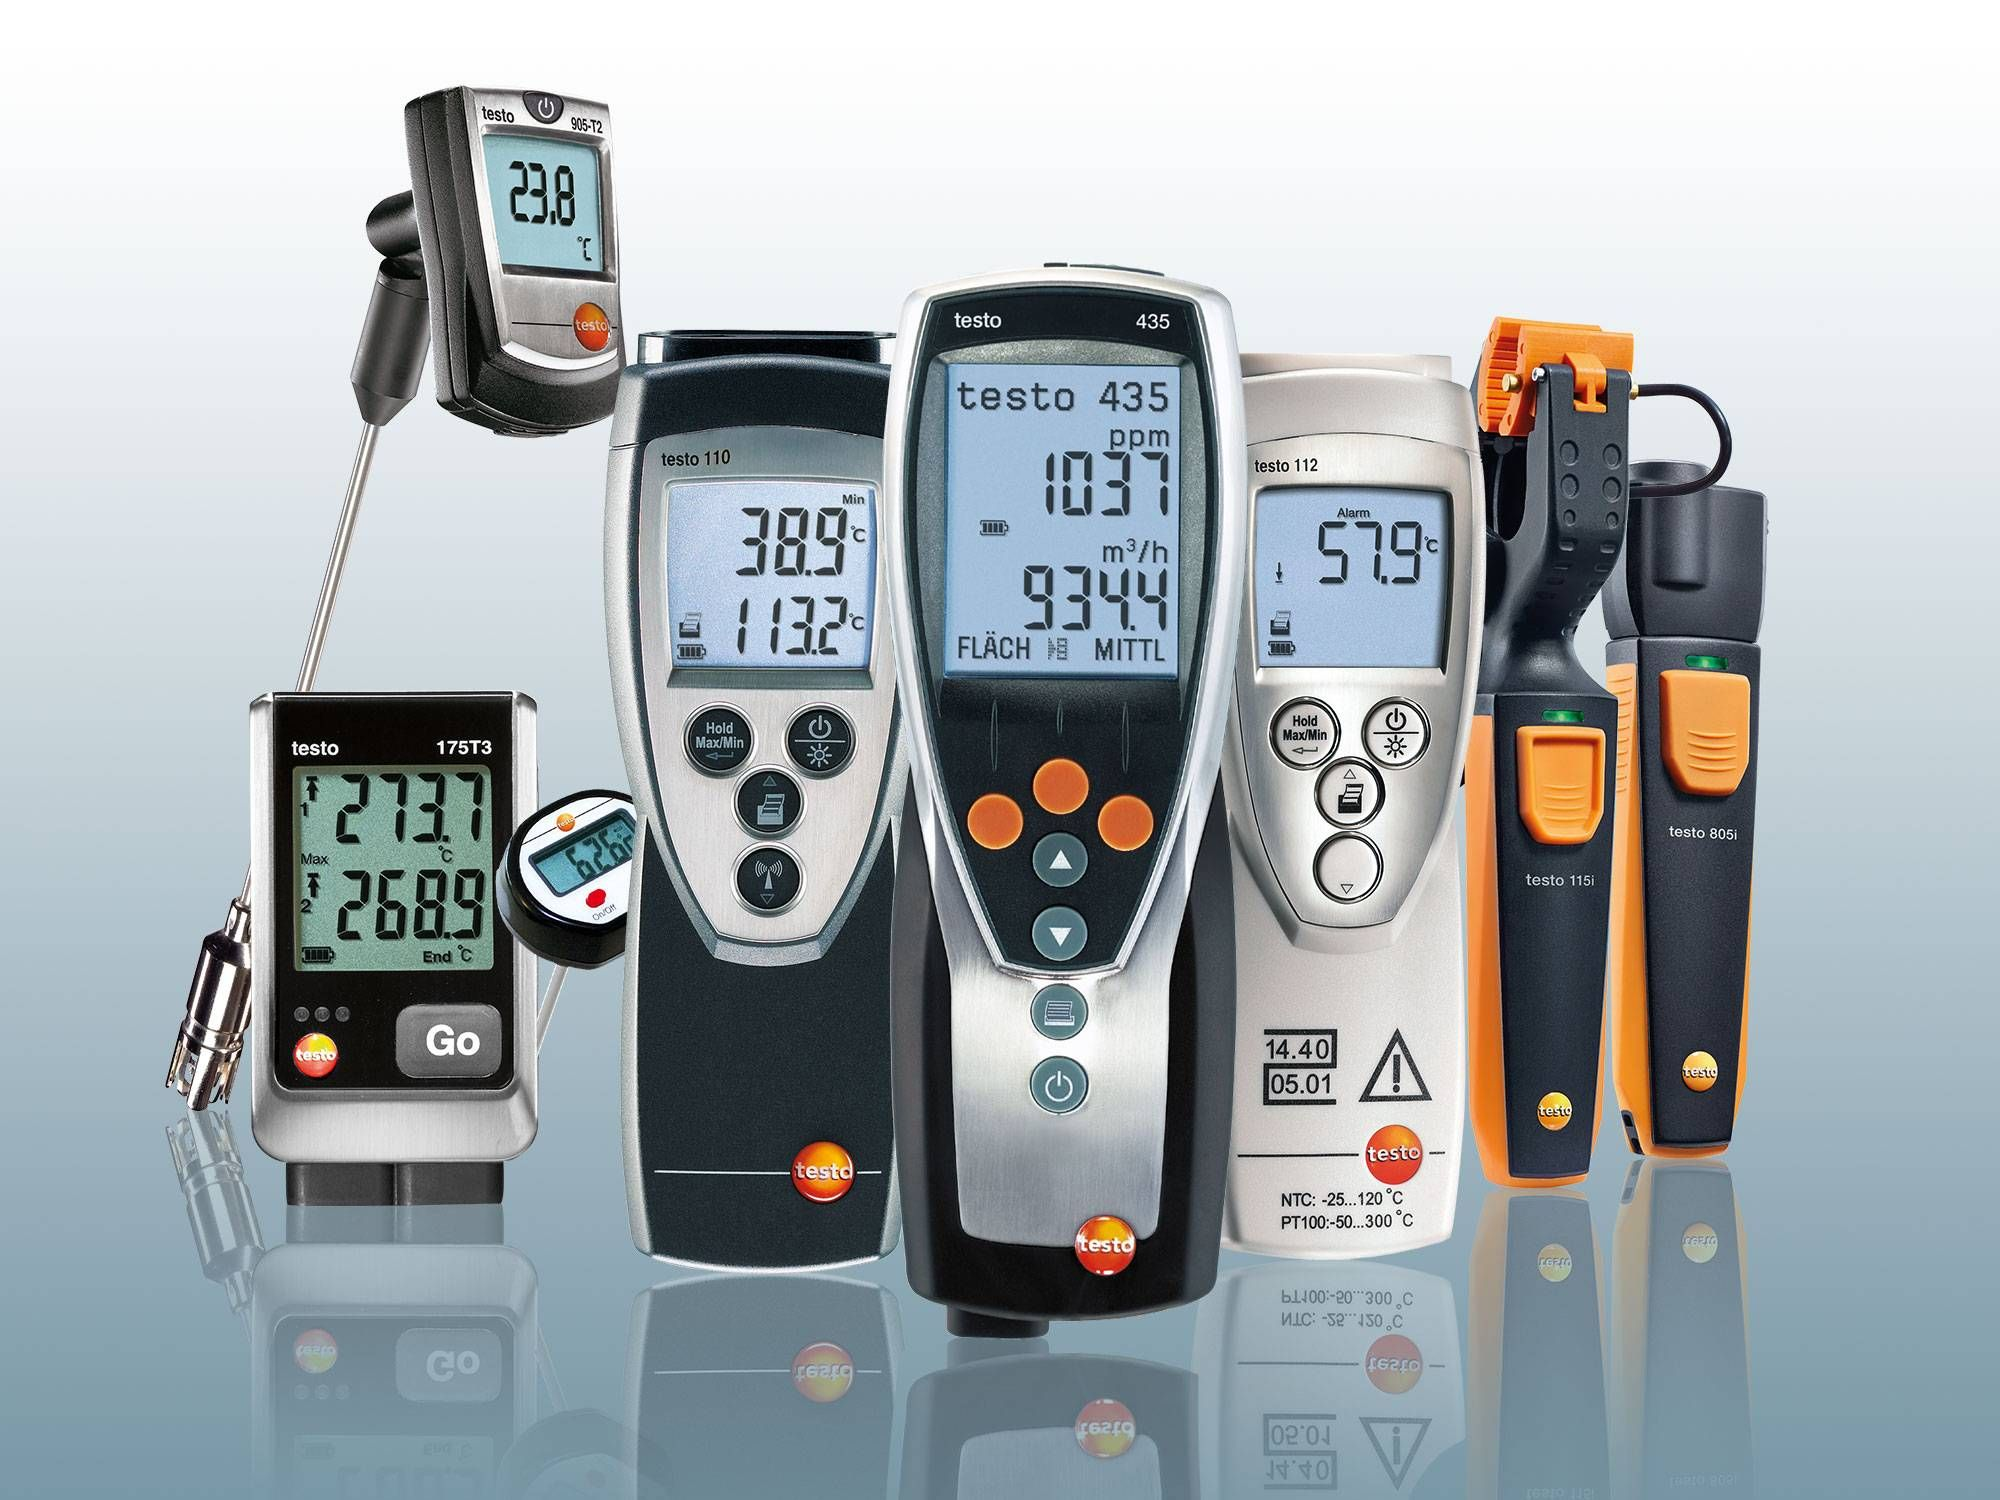 Testo surface thermometers